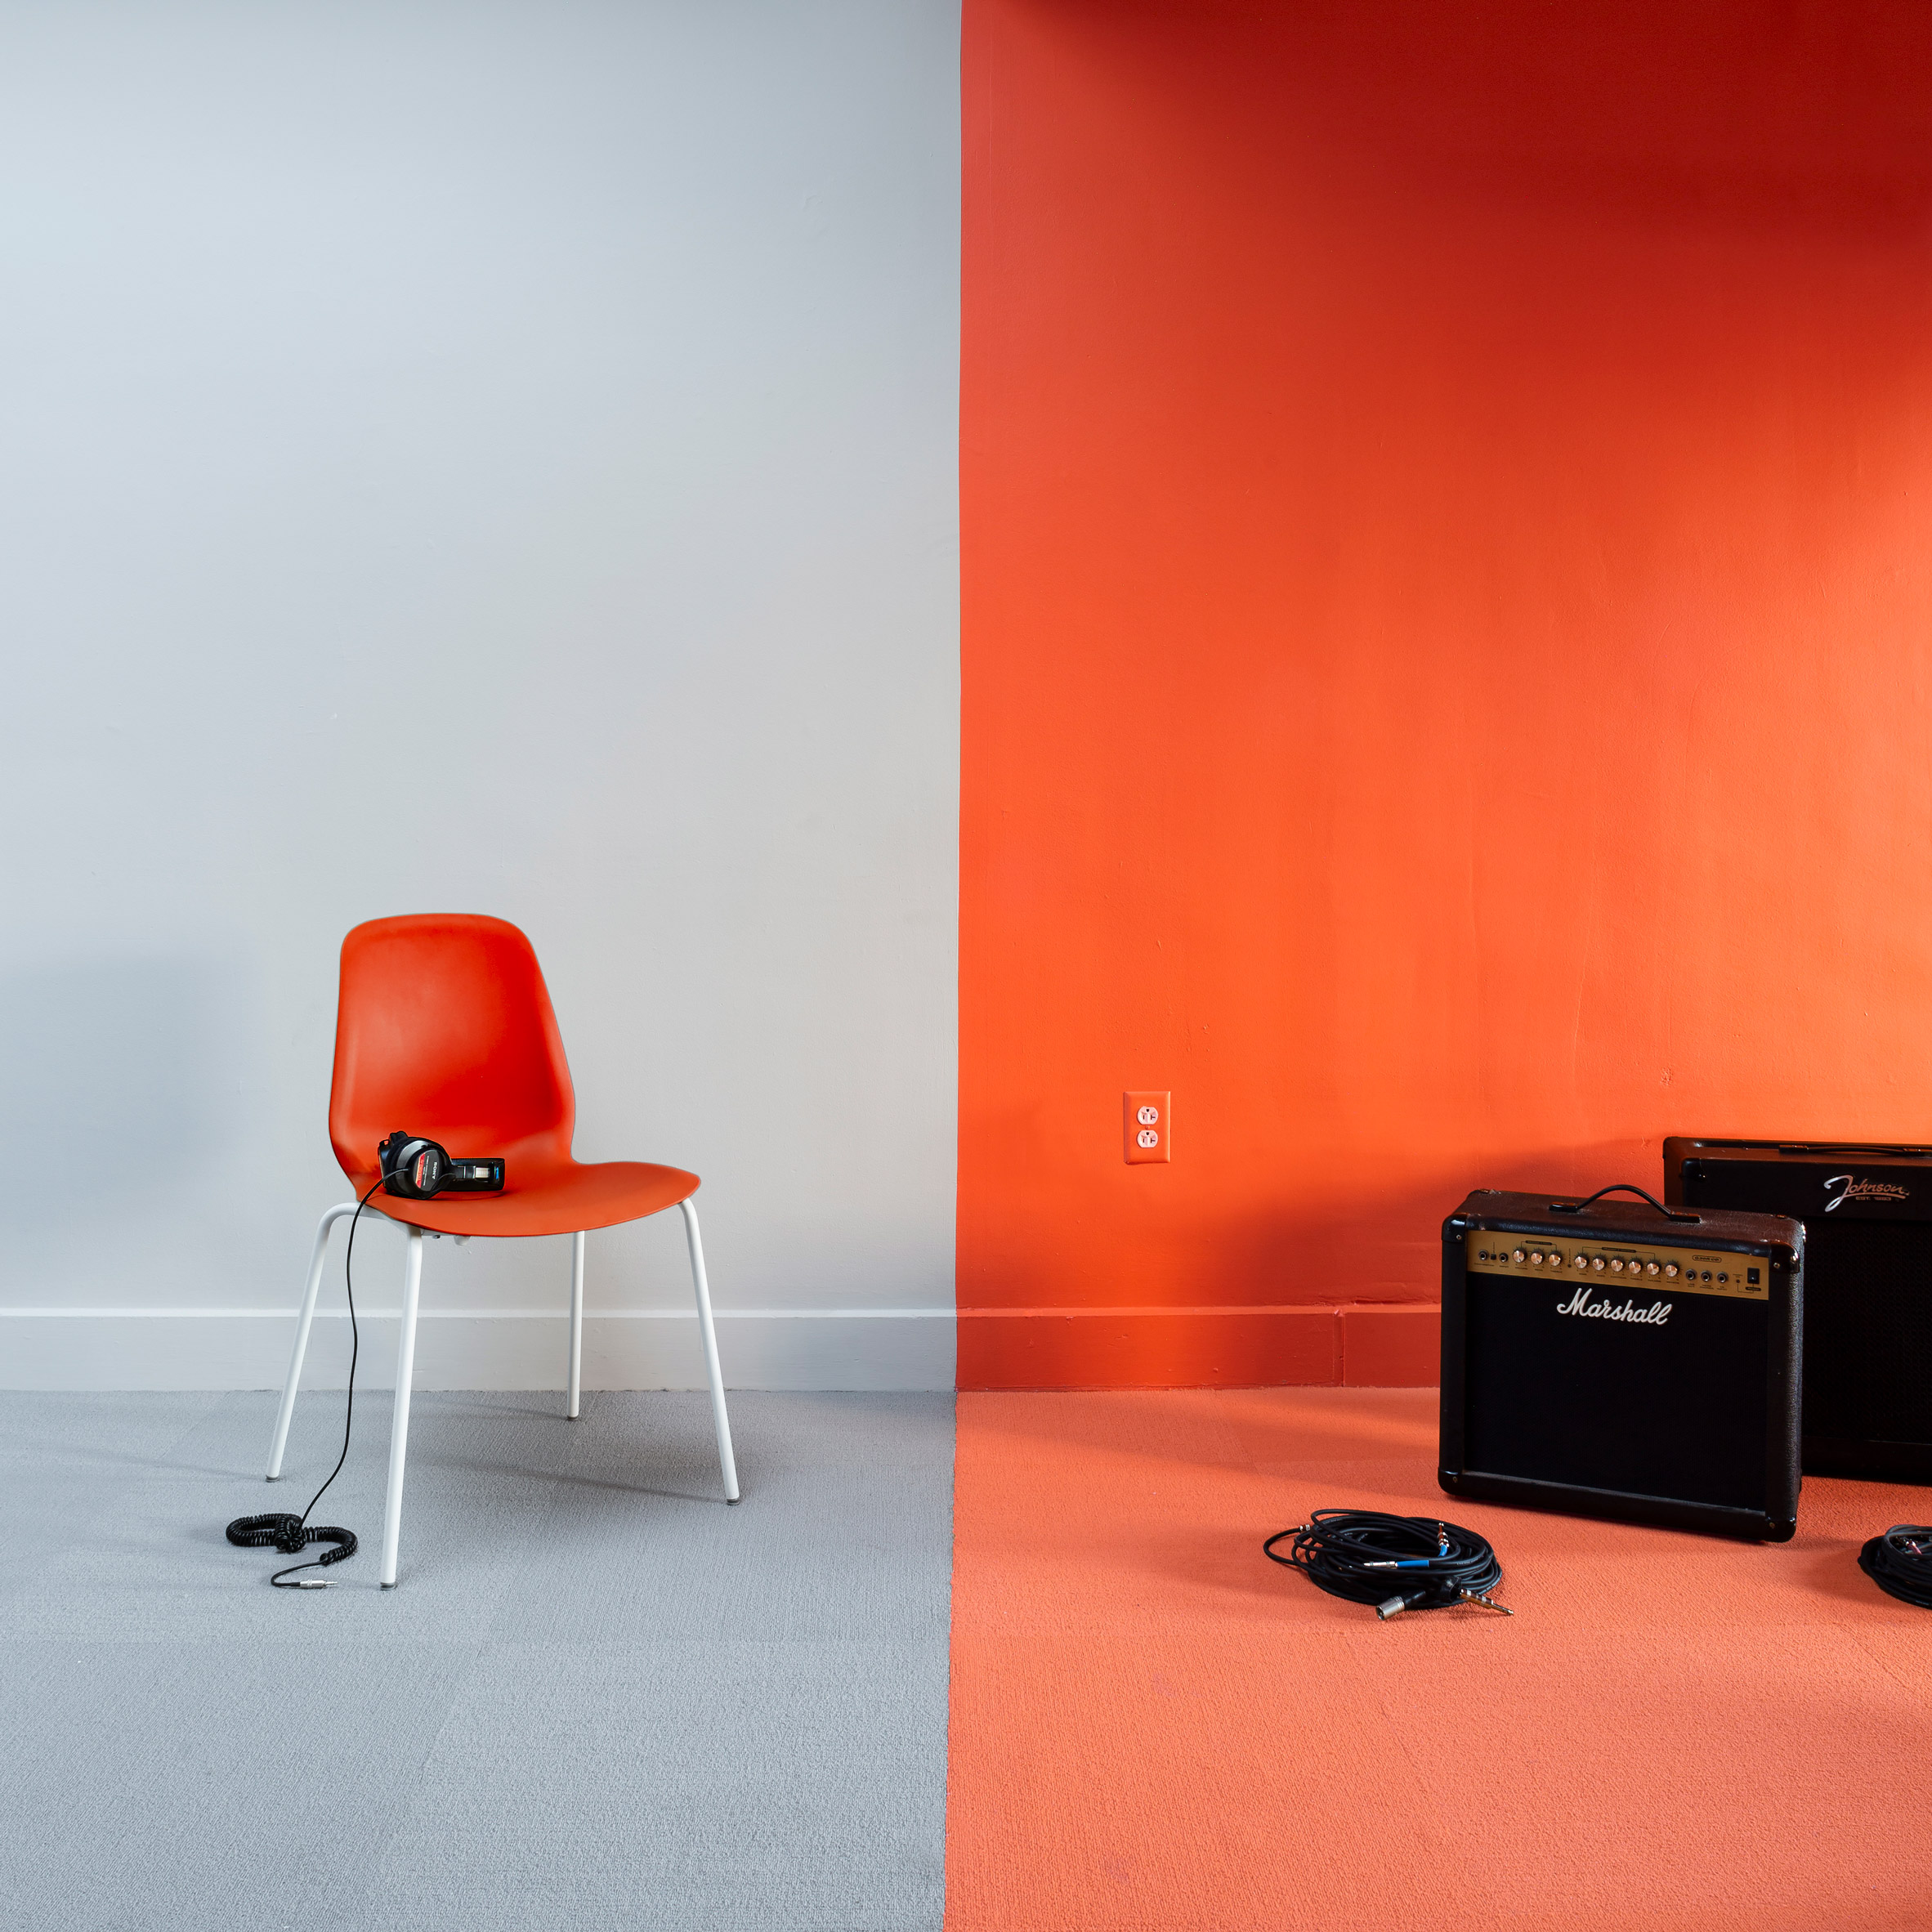 Colour-blocking explored in rooms at Yale University